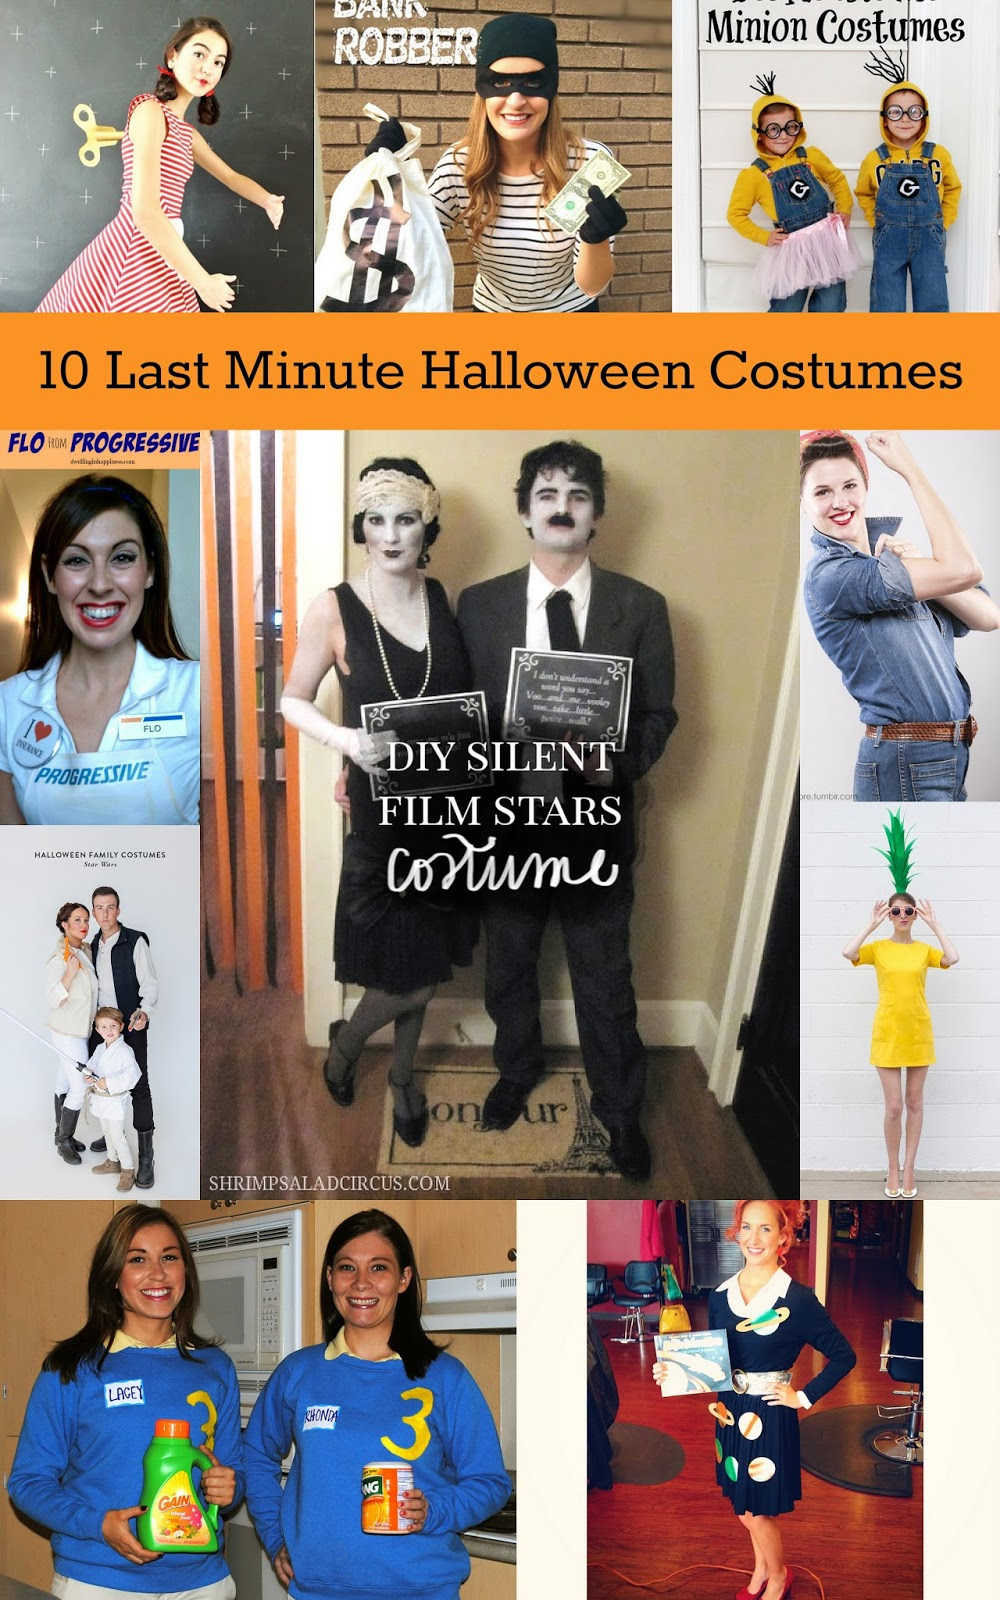 sc 1 st  Housewife Eclectic & 10 Last Minute Halloween Costumes - Housewife Eclectic